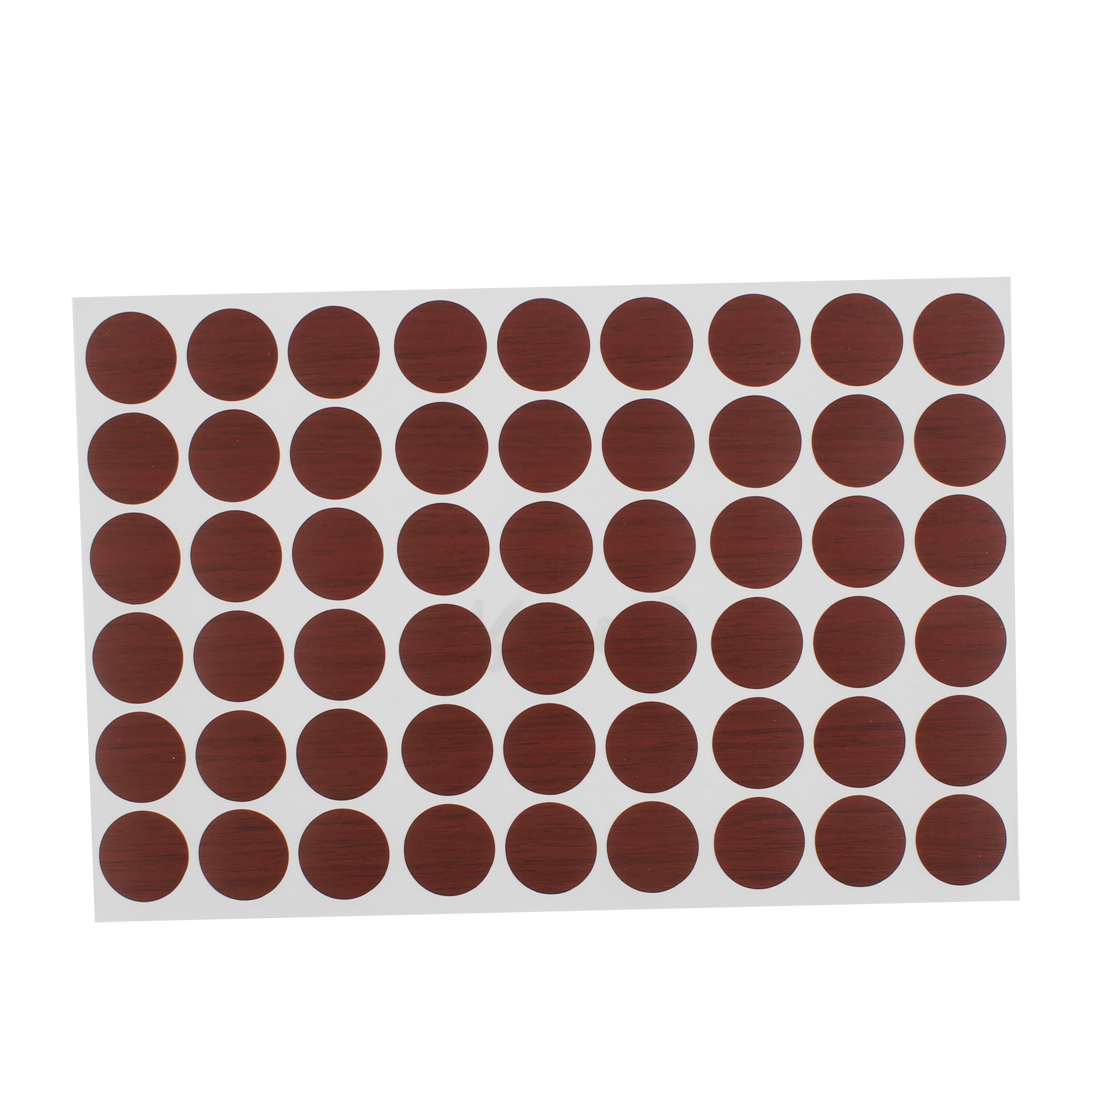 Furniture Desk Table Self-adhesive Screw Hole Covers Caps Stickers Red Brown 54 in 1